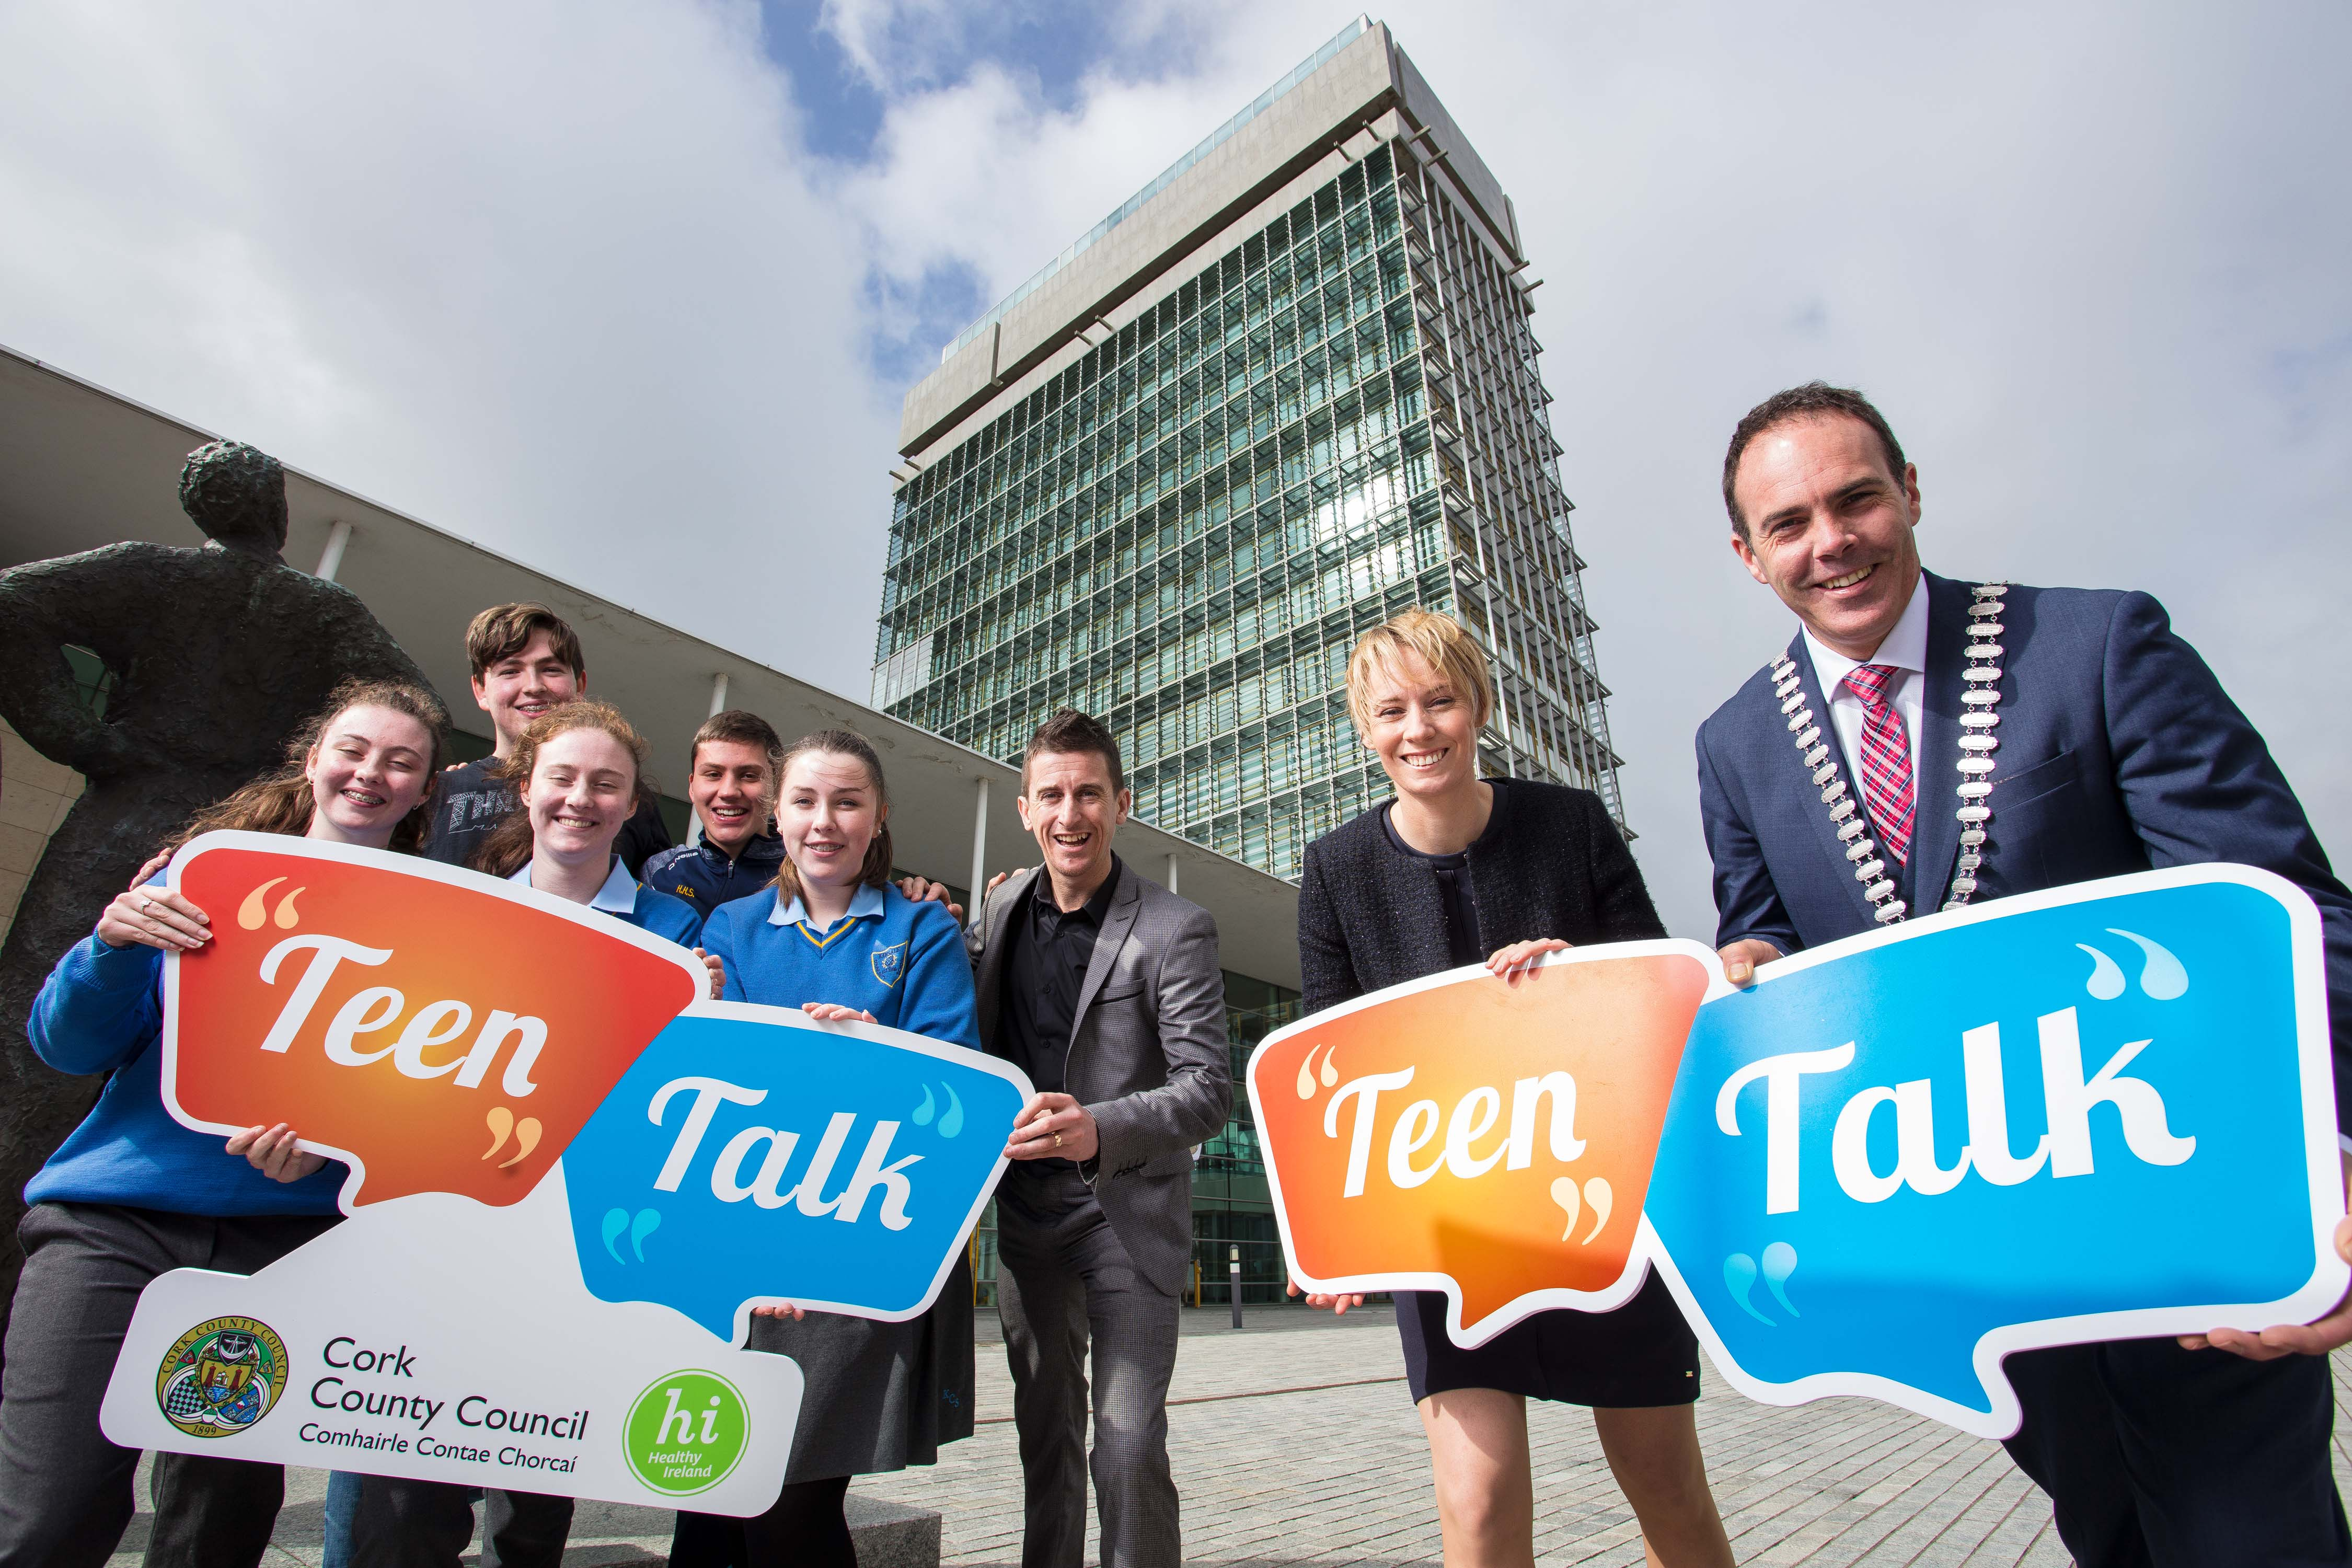 Teen Talk to get TY students talking about Health & Mental Wellbeing